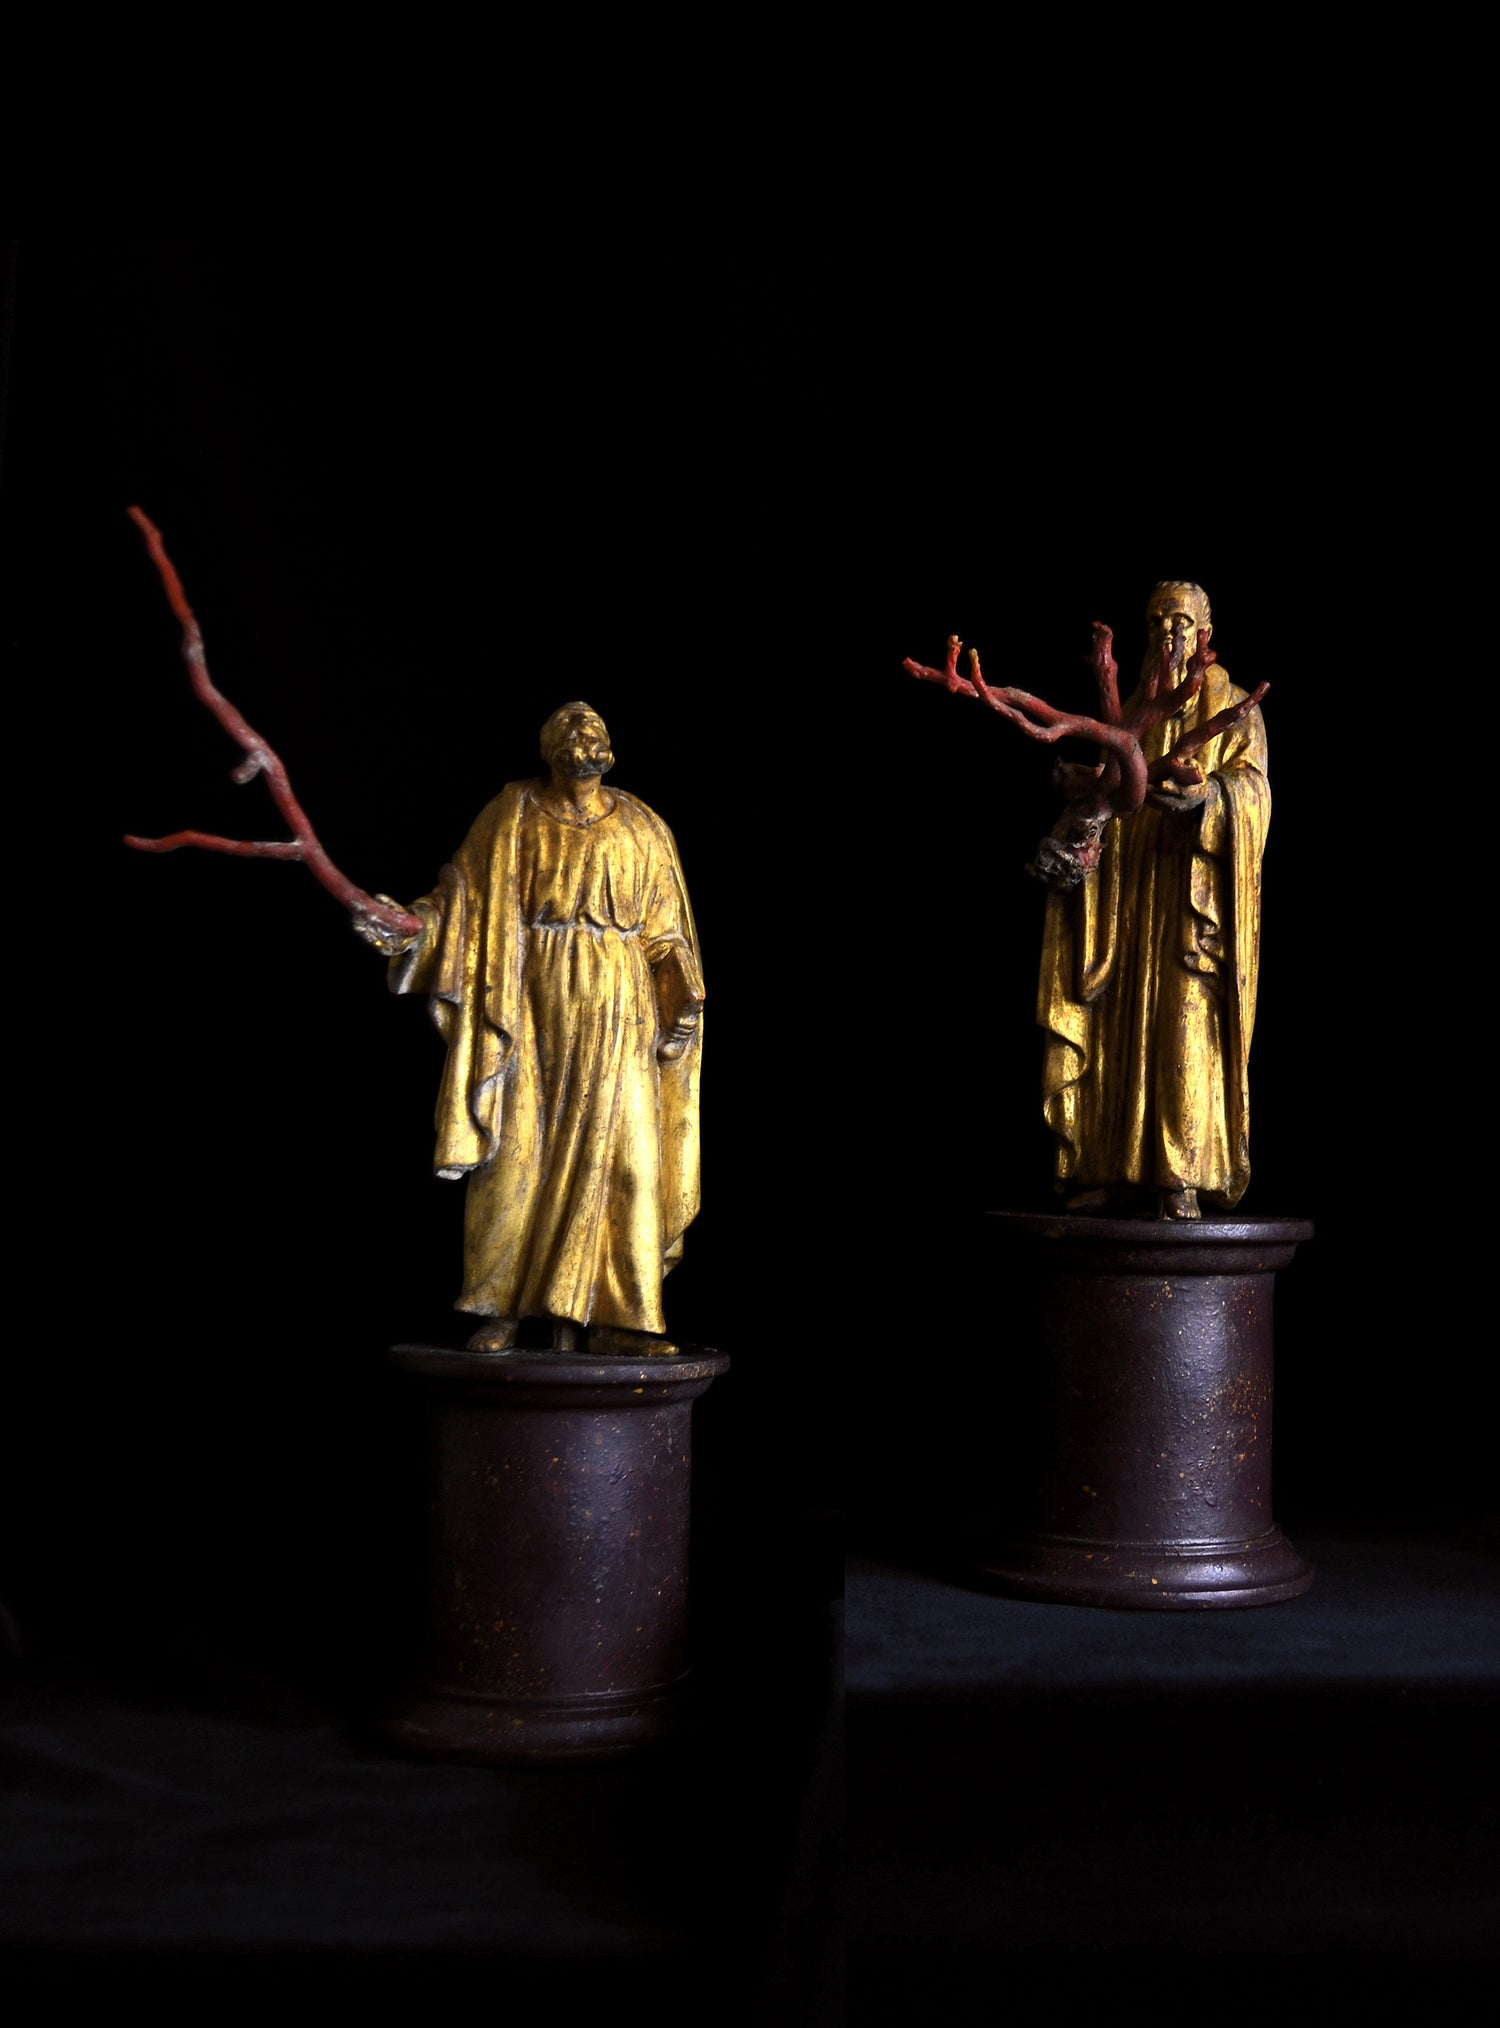 Image of Pair of 19th century gilt wood and Mediterranean coral sculptures of saints